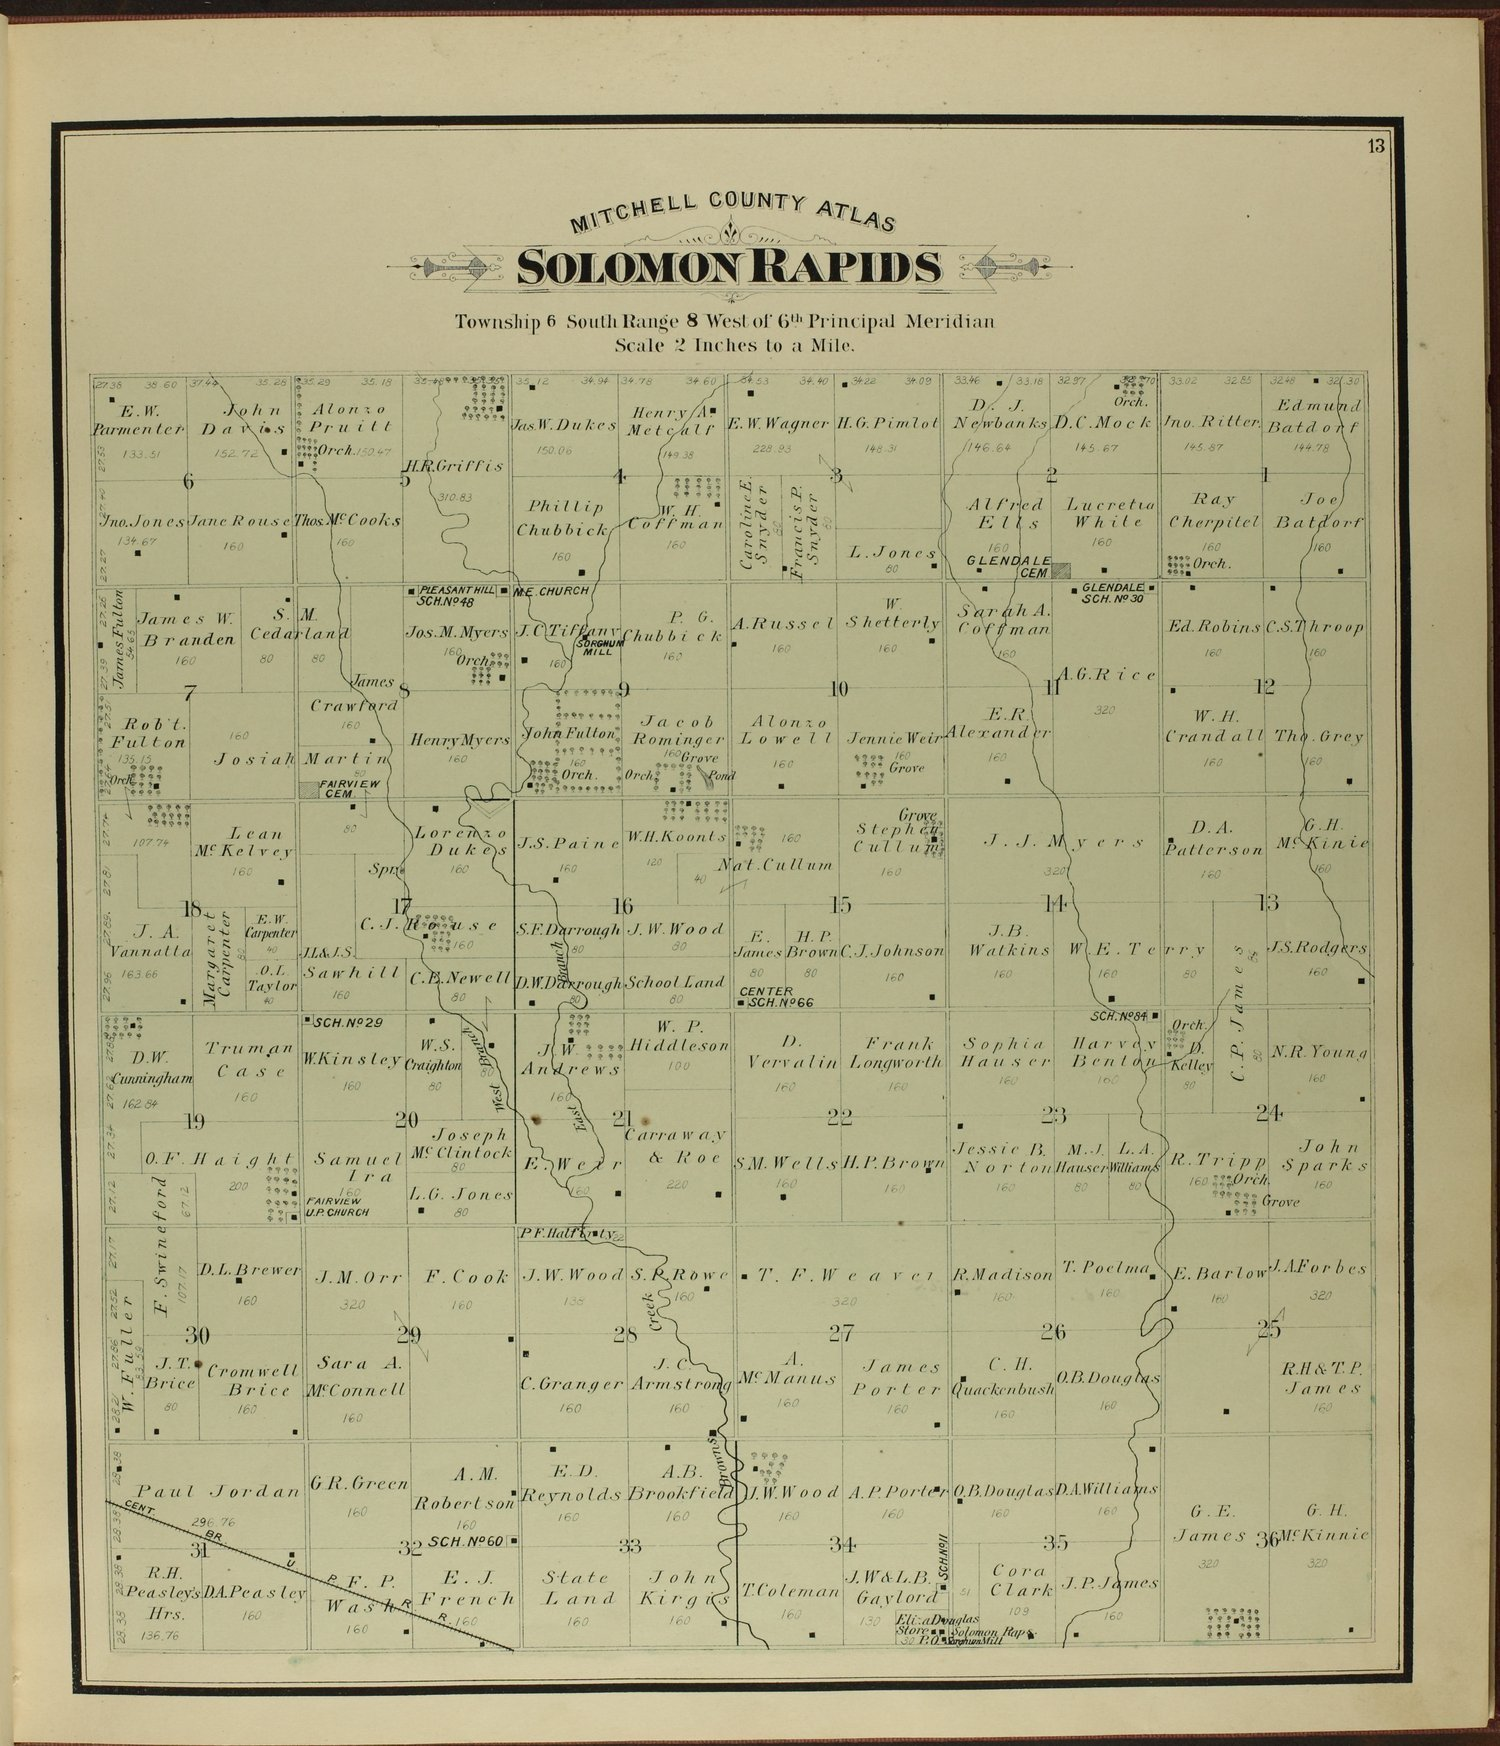 Atlas of Mitchell County, Kansas - 13